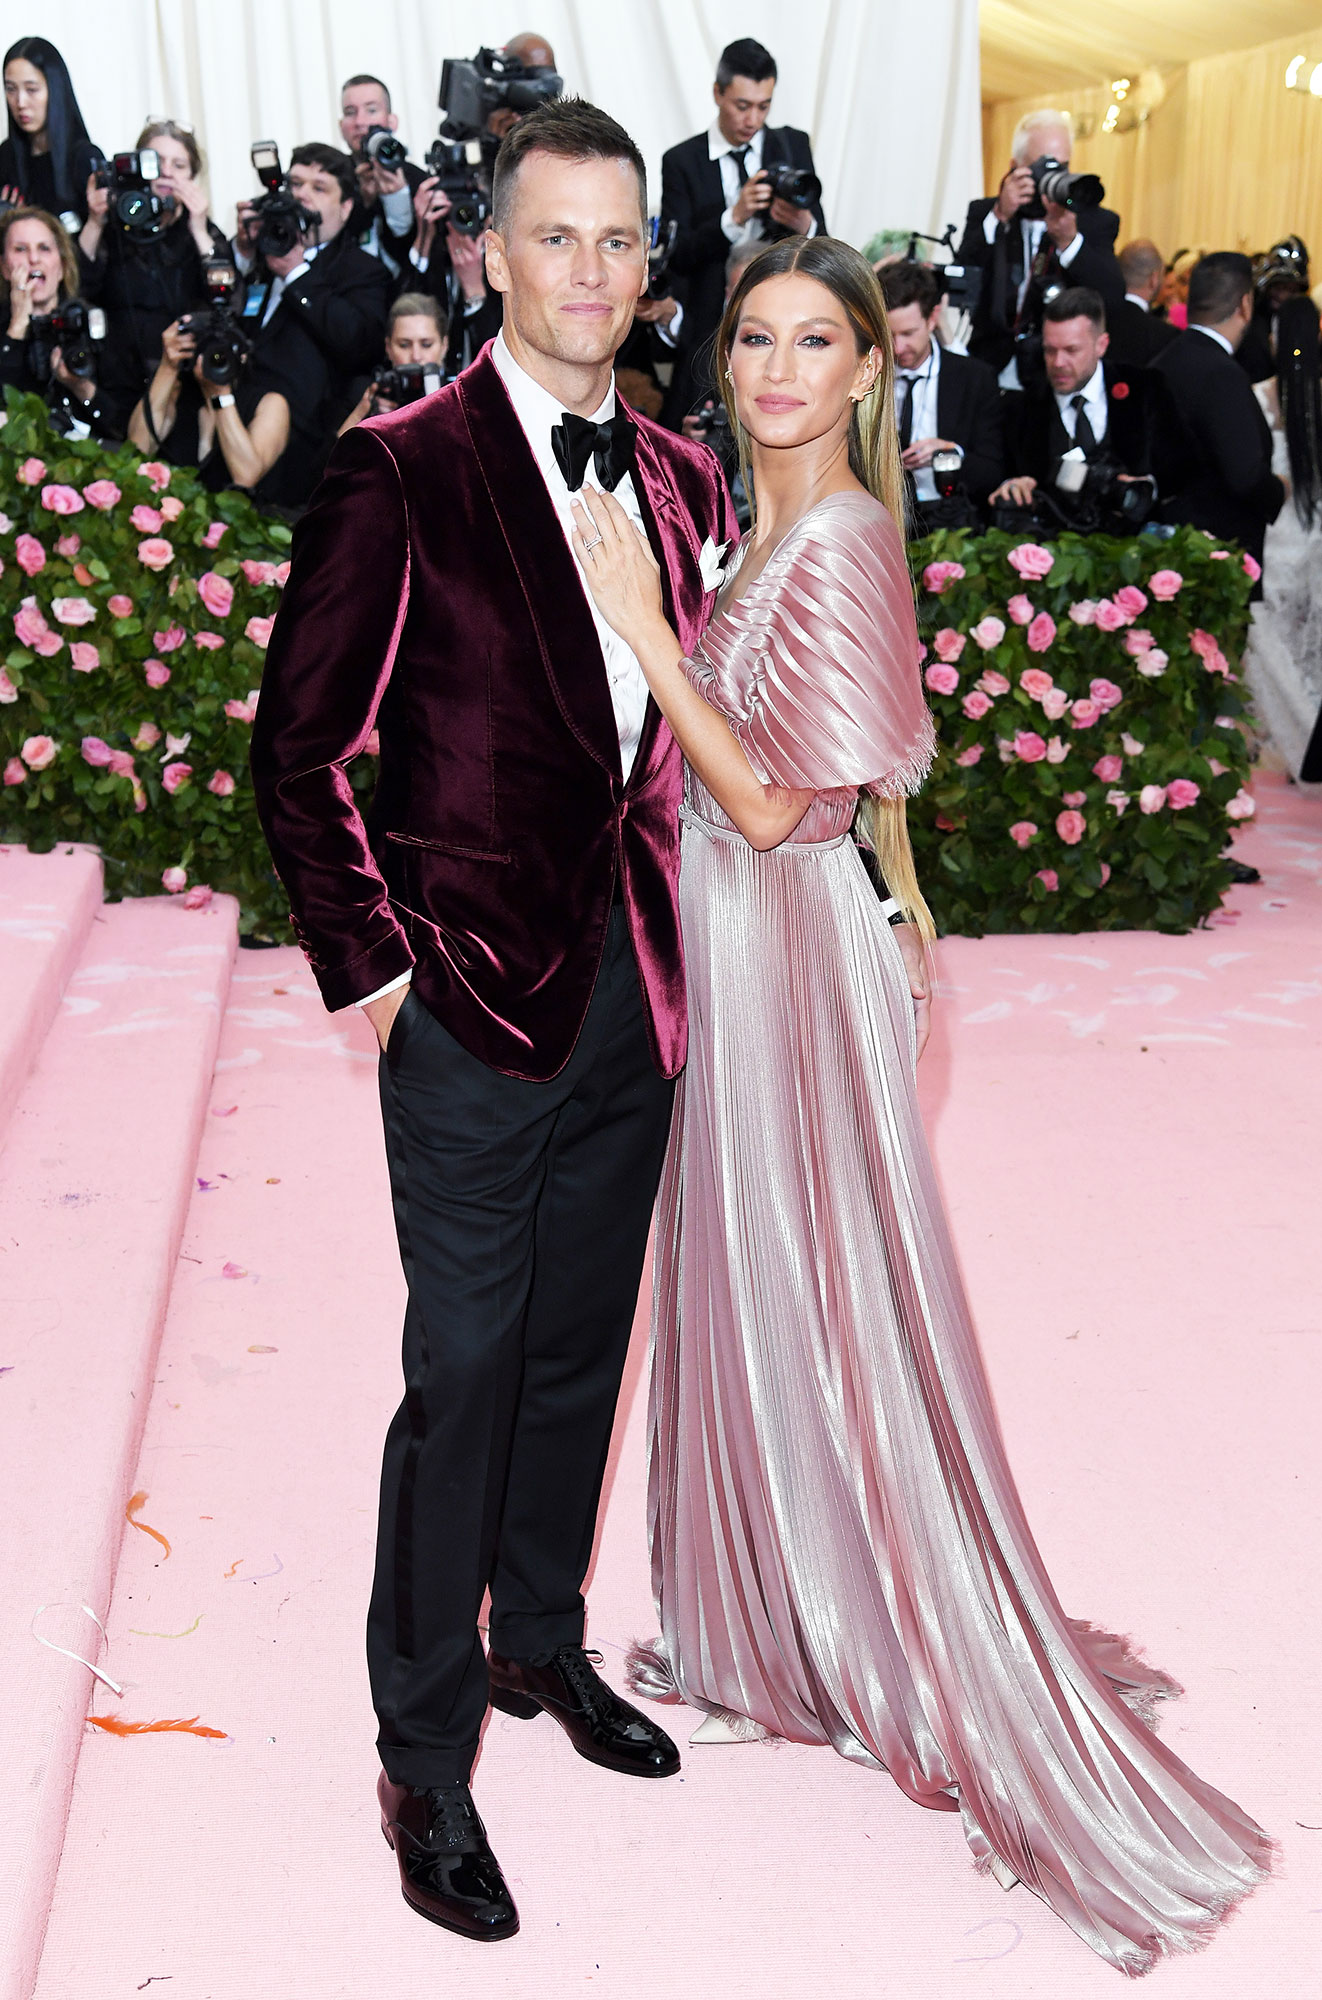 Tom Brady and Gisele Bundchen met gala 2019 couples - They may not have been on-theme, but the genetically blessed duo color coordinated in shades of pink. The supermodel stunned in pleated Dior.